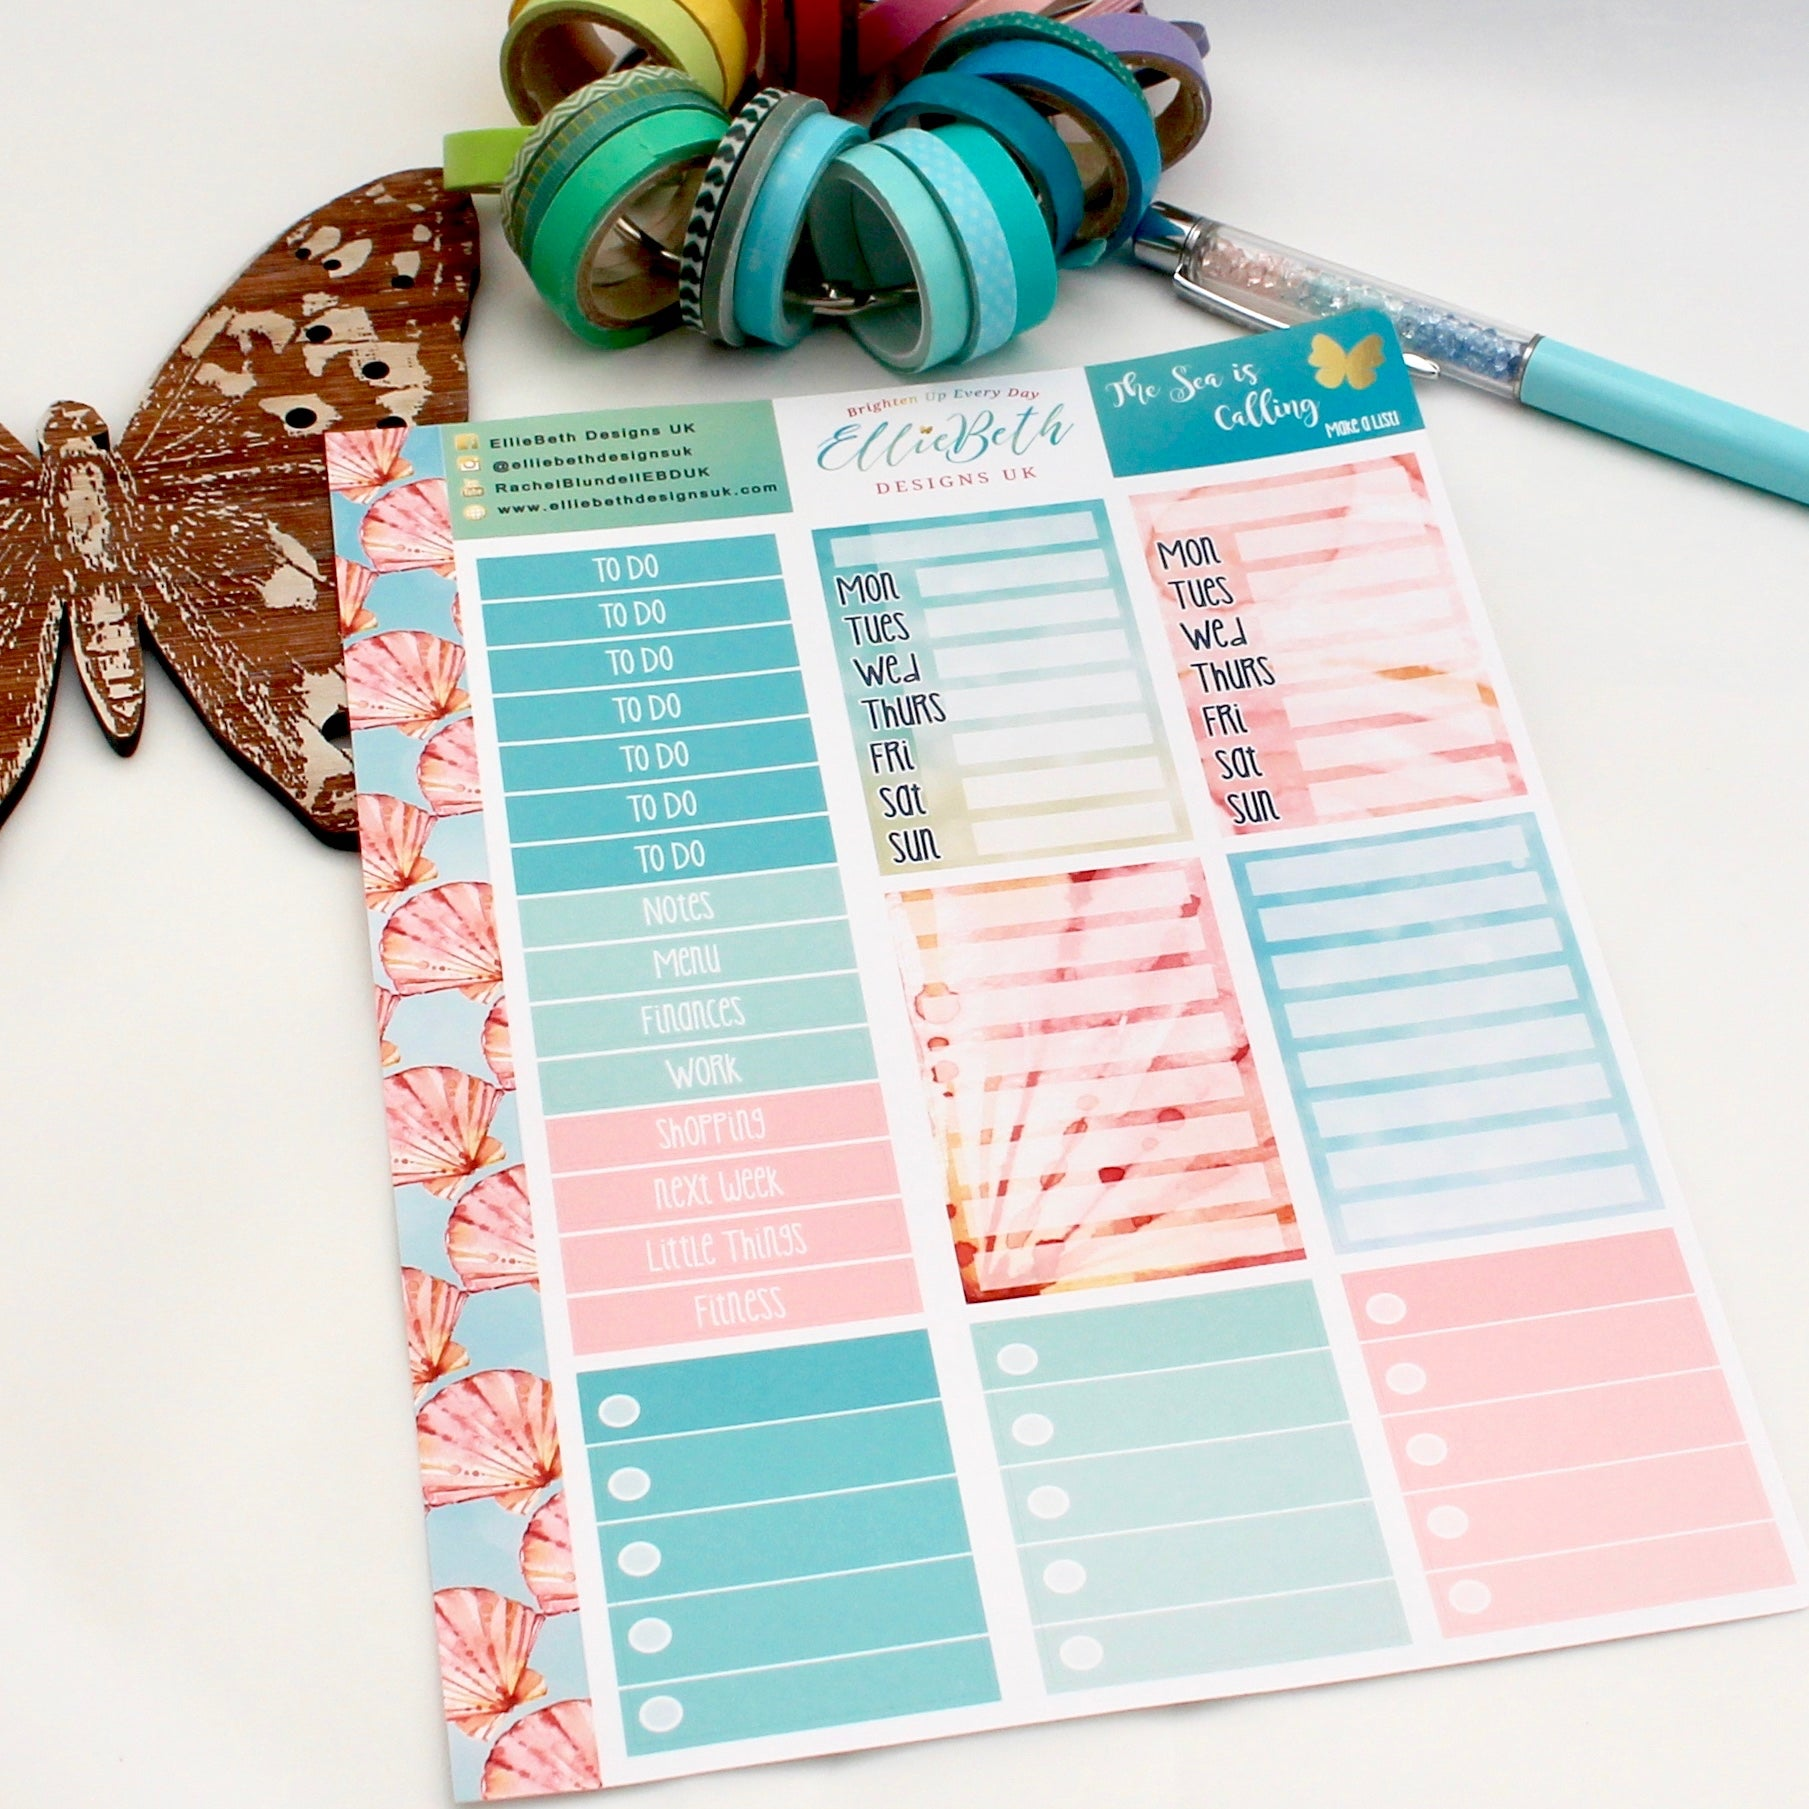 'The Sea is Calling' - Make a List Sheet -  A5 binder ready planner stickers